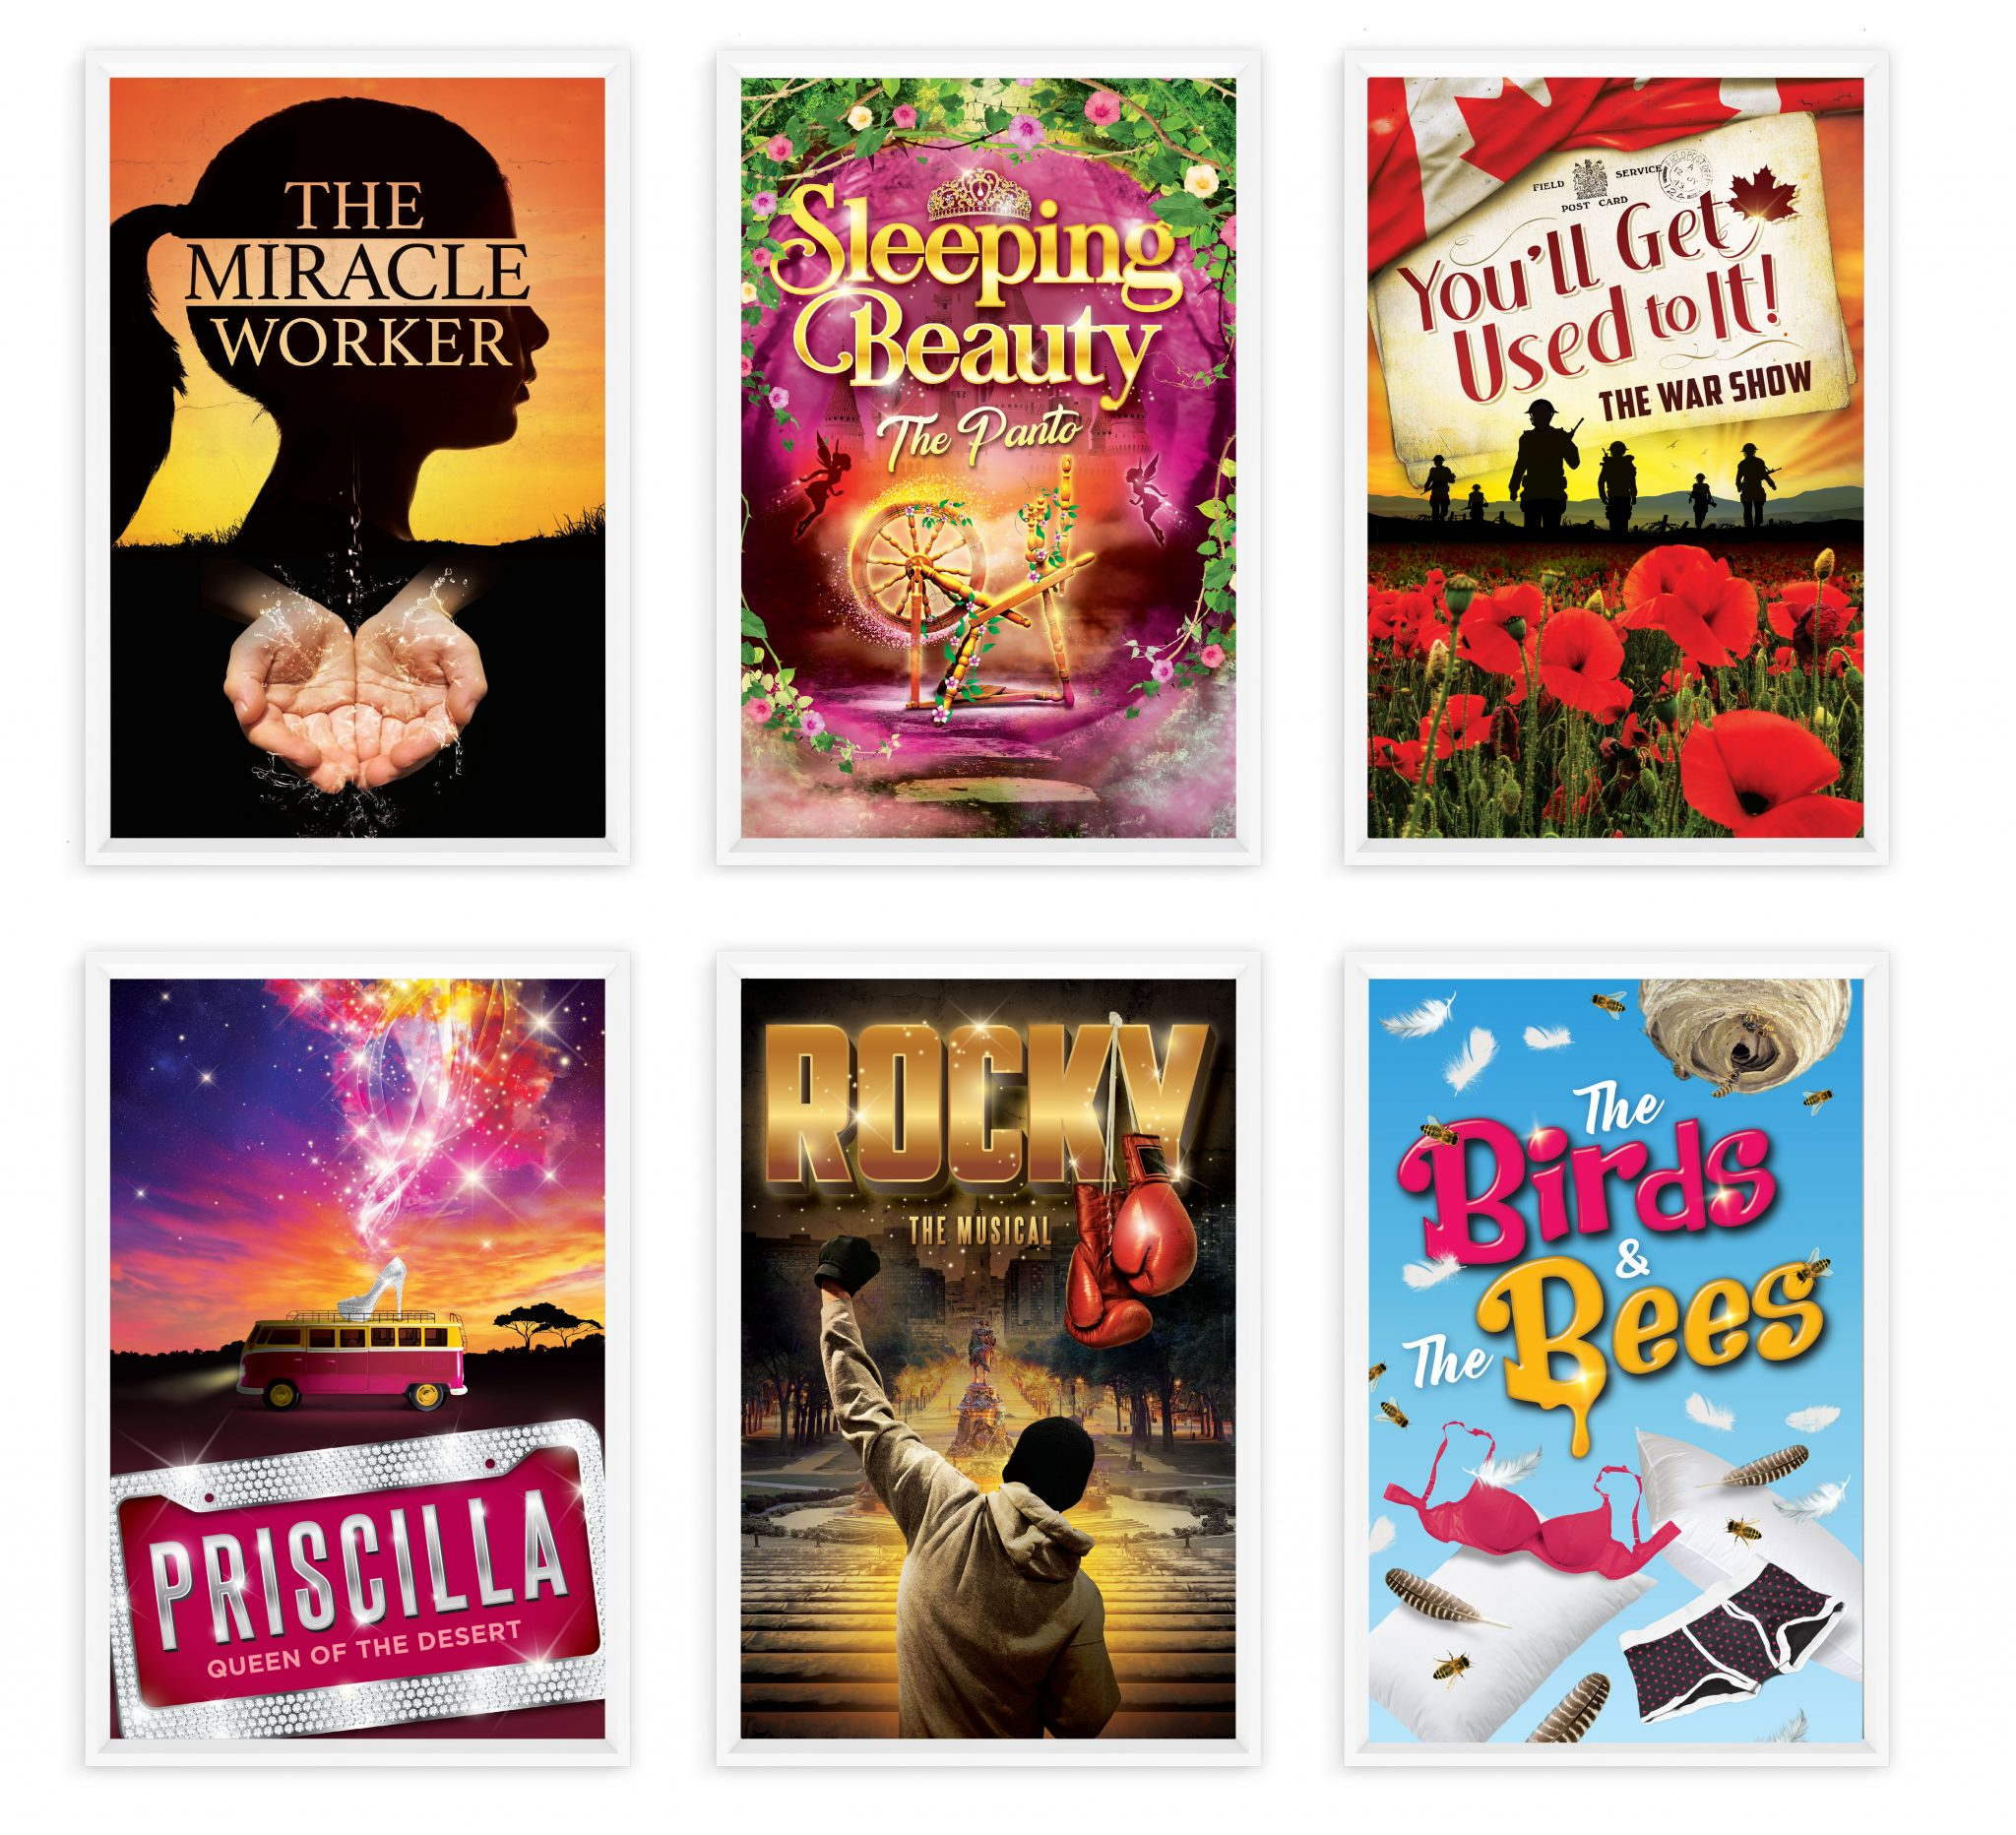 Production posters for The Miracle Worker, Sleeping Beauty, The War Show, Priscilla: Queen of the Desert, Rocky: The Musical, and The Birds & The Bees.